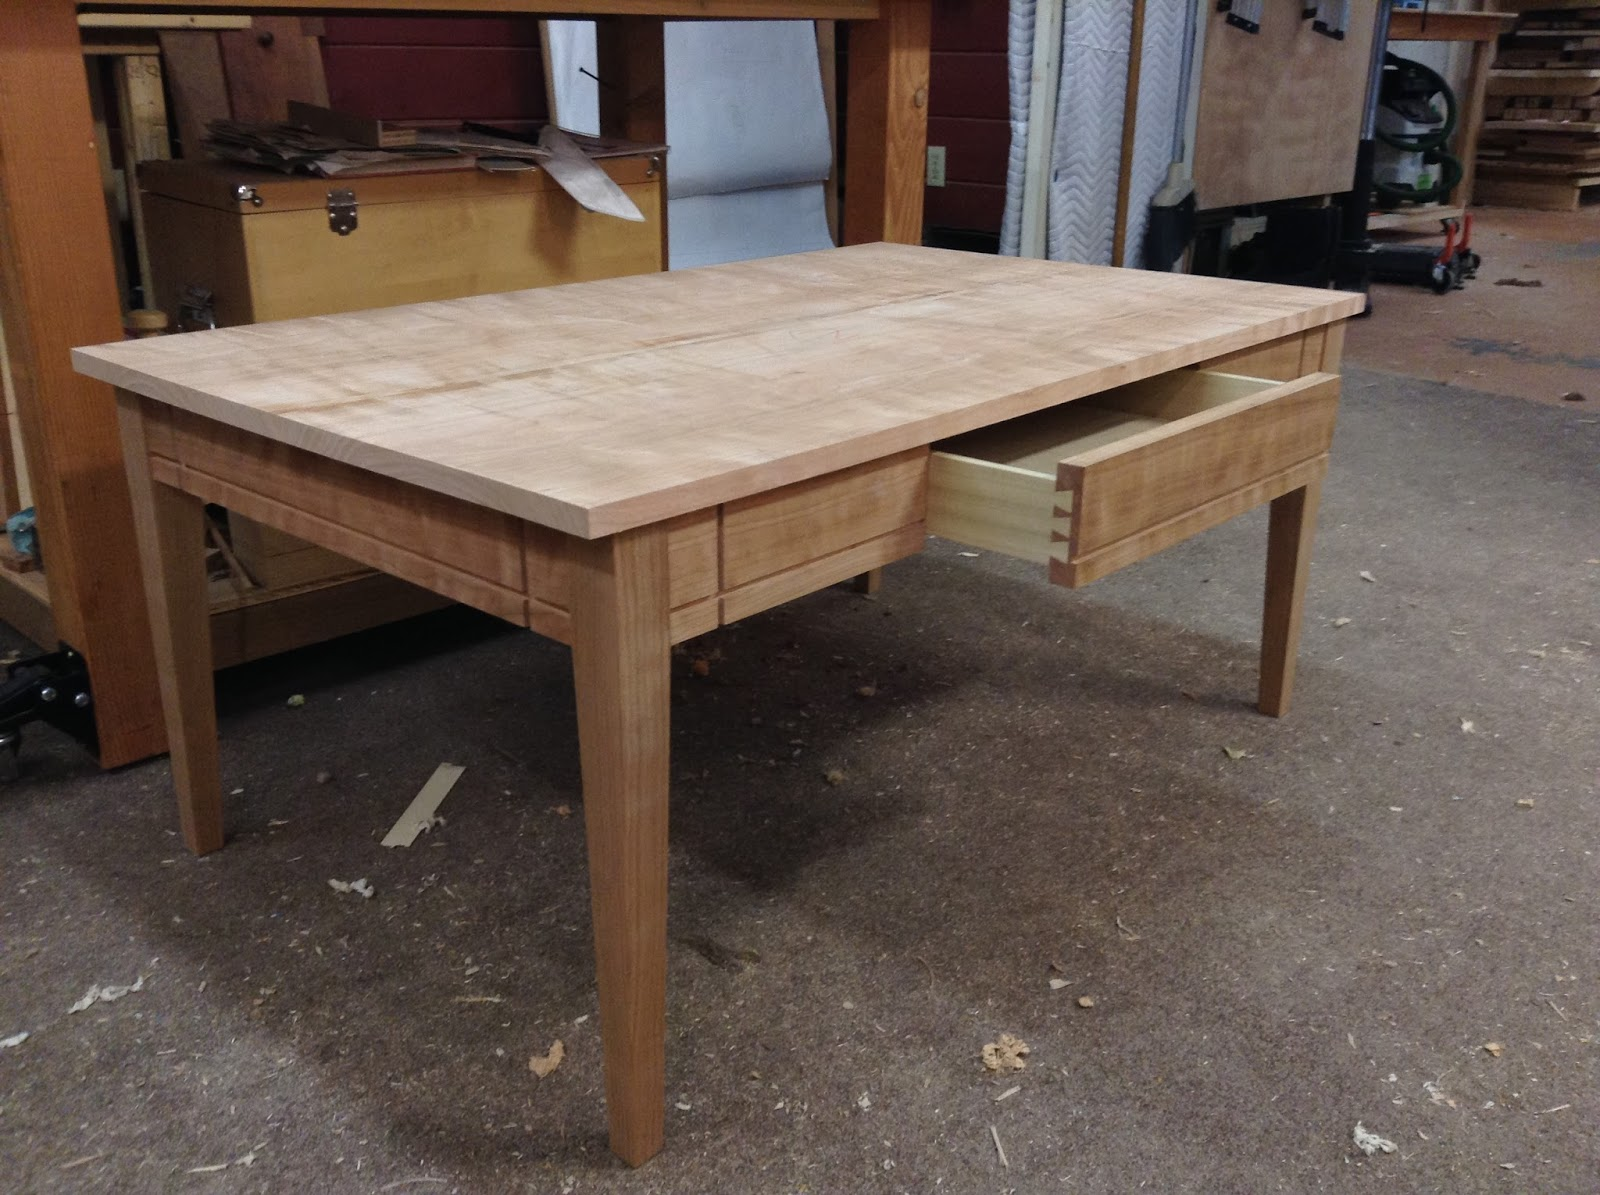 Doucette and wolfe fine furniture makers coffee table handmade solid wood coffee table geotapseo Image collections